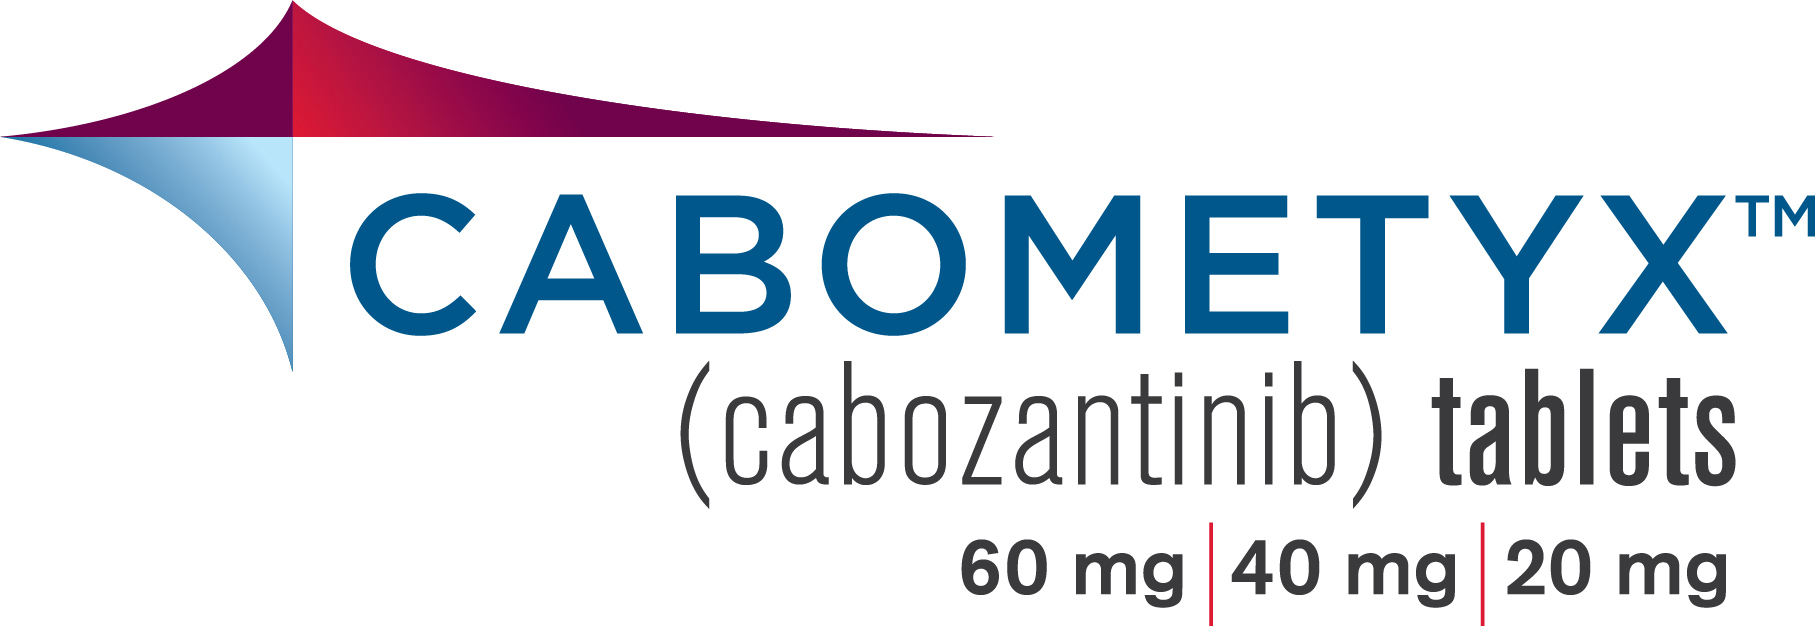 ADDING MULTIMEDIA Exelixis Announces FDA Approval of CABOMETYX ...